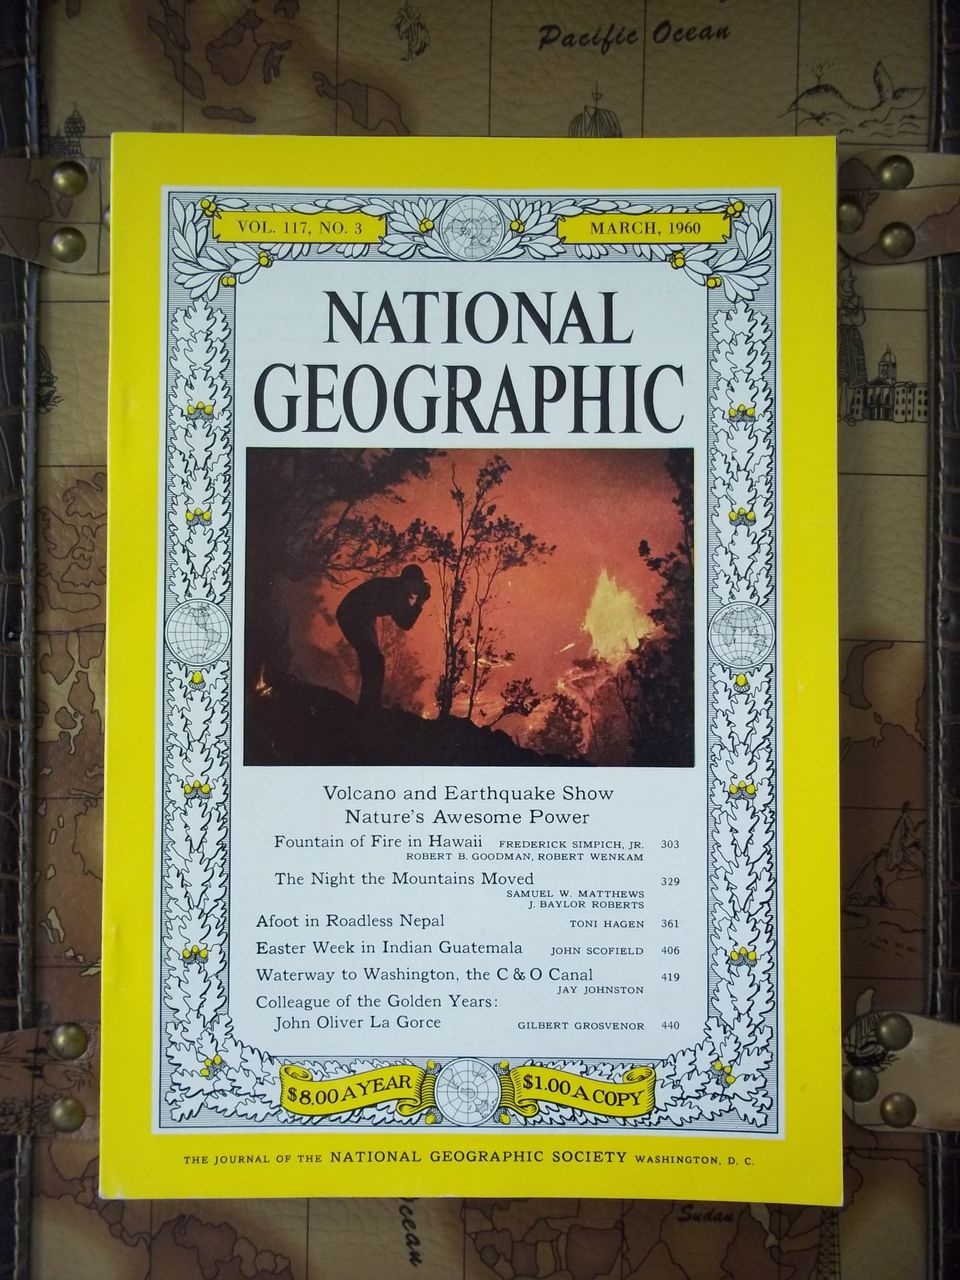 National Geographic Vol. 117, No. 3, March 1960